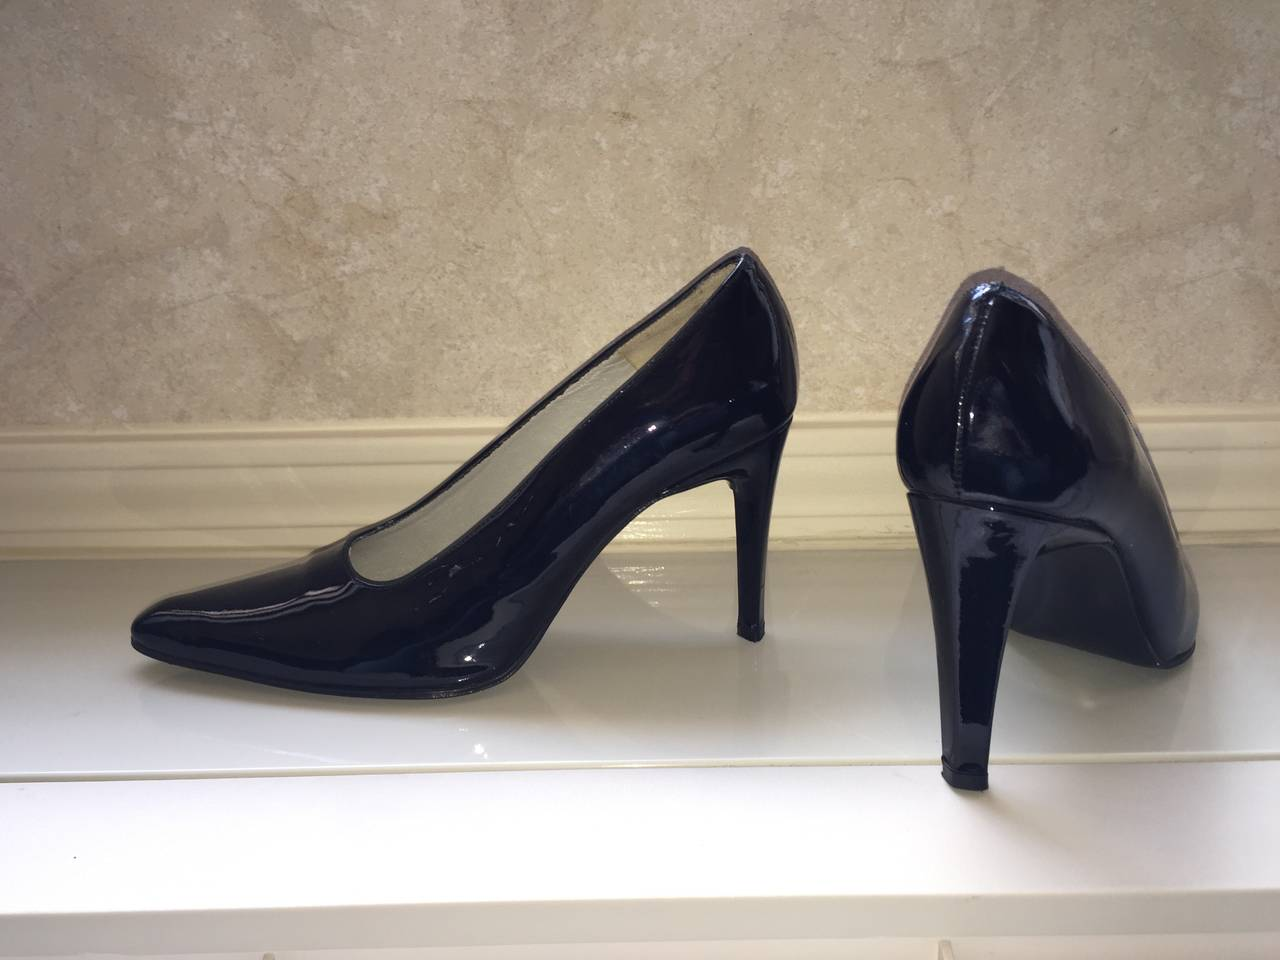 Vintage Carlos Falchi Classic Black Patent Leather Pumps / Heels / Shoes Size 8 In Excellent Condition For Sale In Chicago, IL